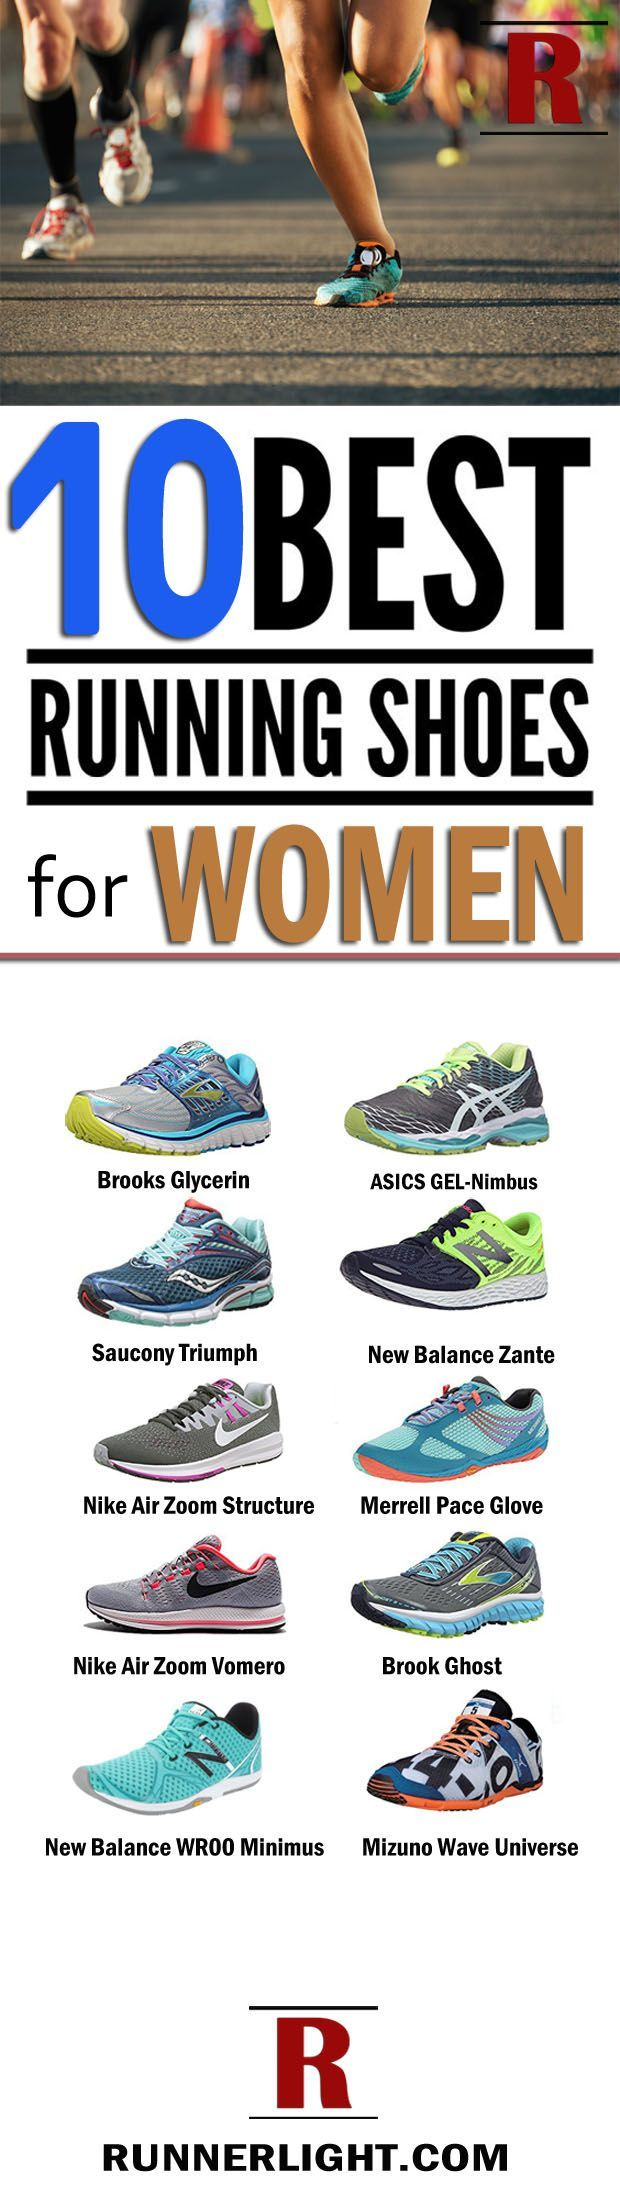 Running Arches 10 Of Shoes Best For List Flat FeetHigh With Women lFJ1cK